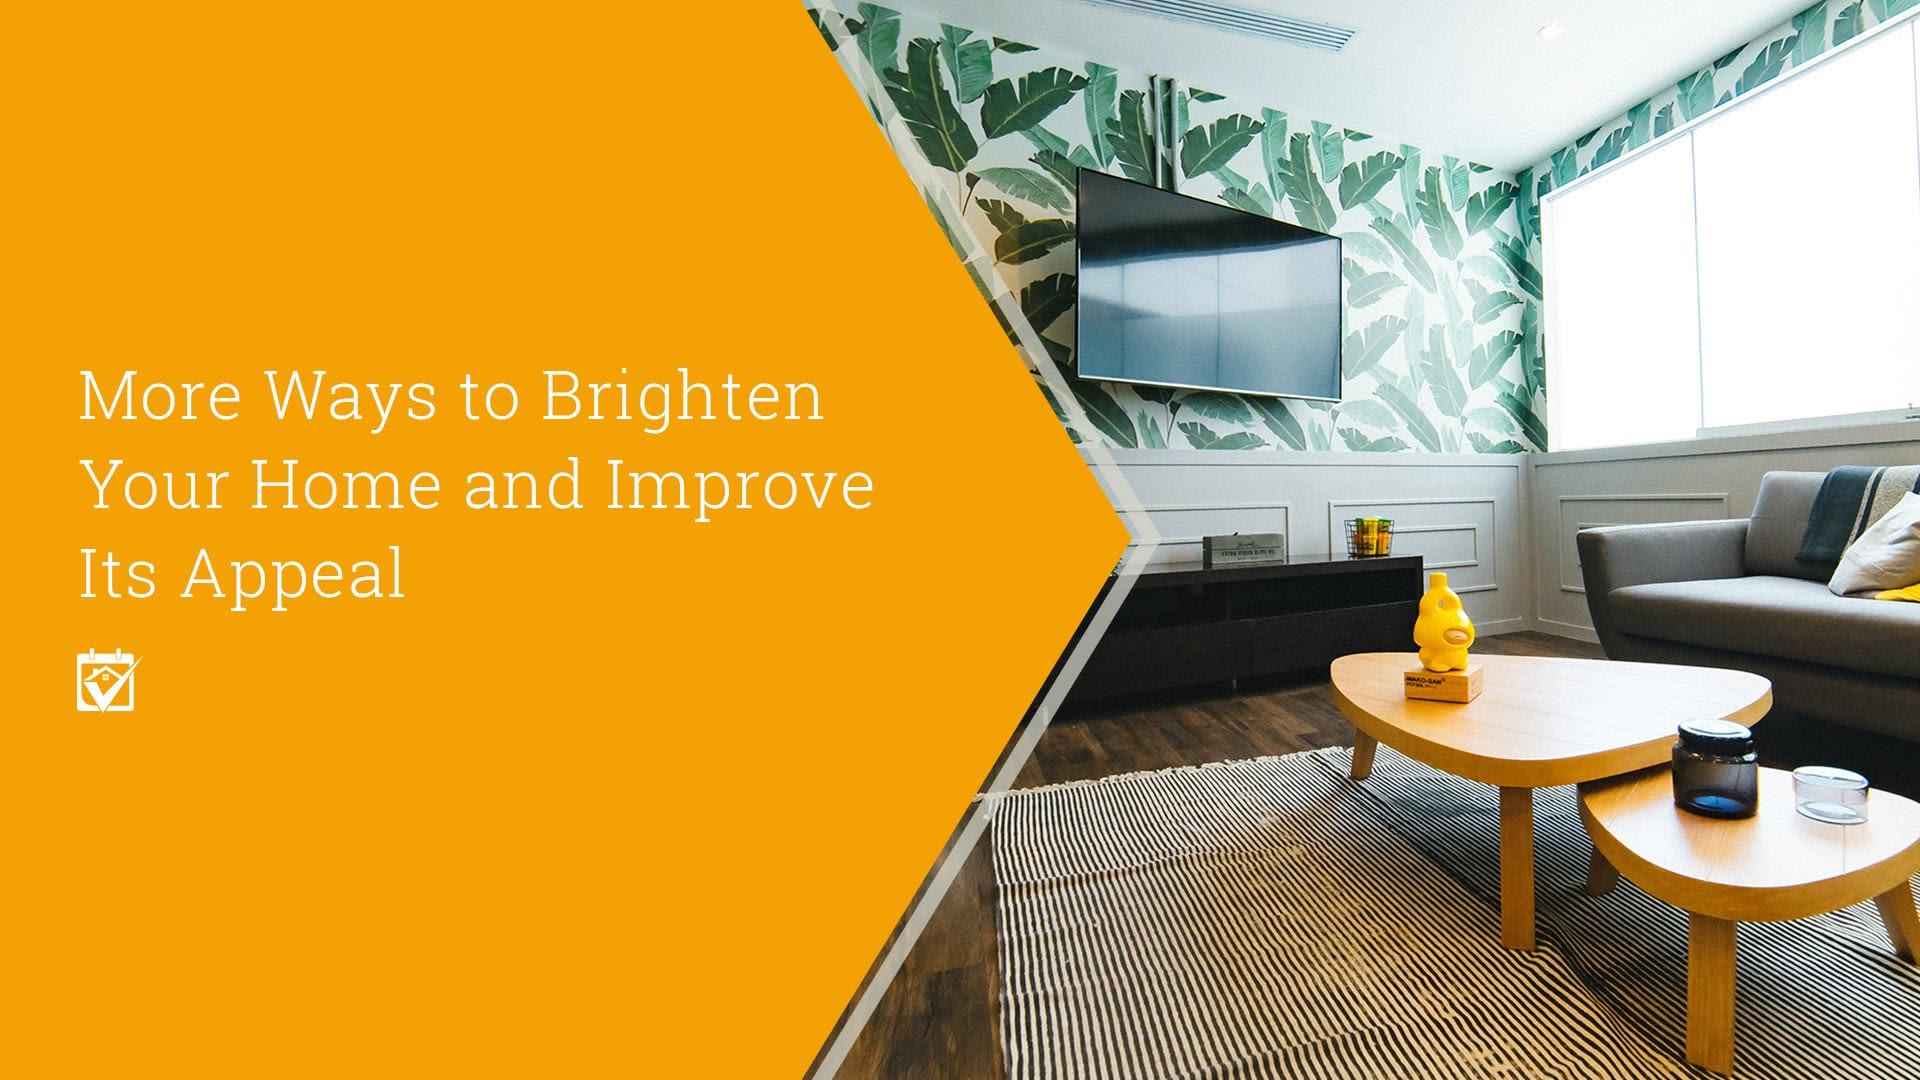 Ways to Brighten Your Home and Improve Its Appeal